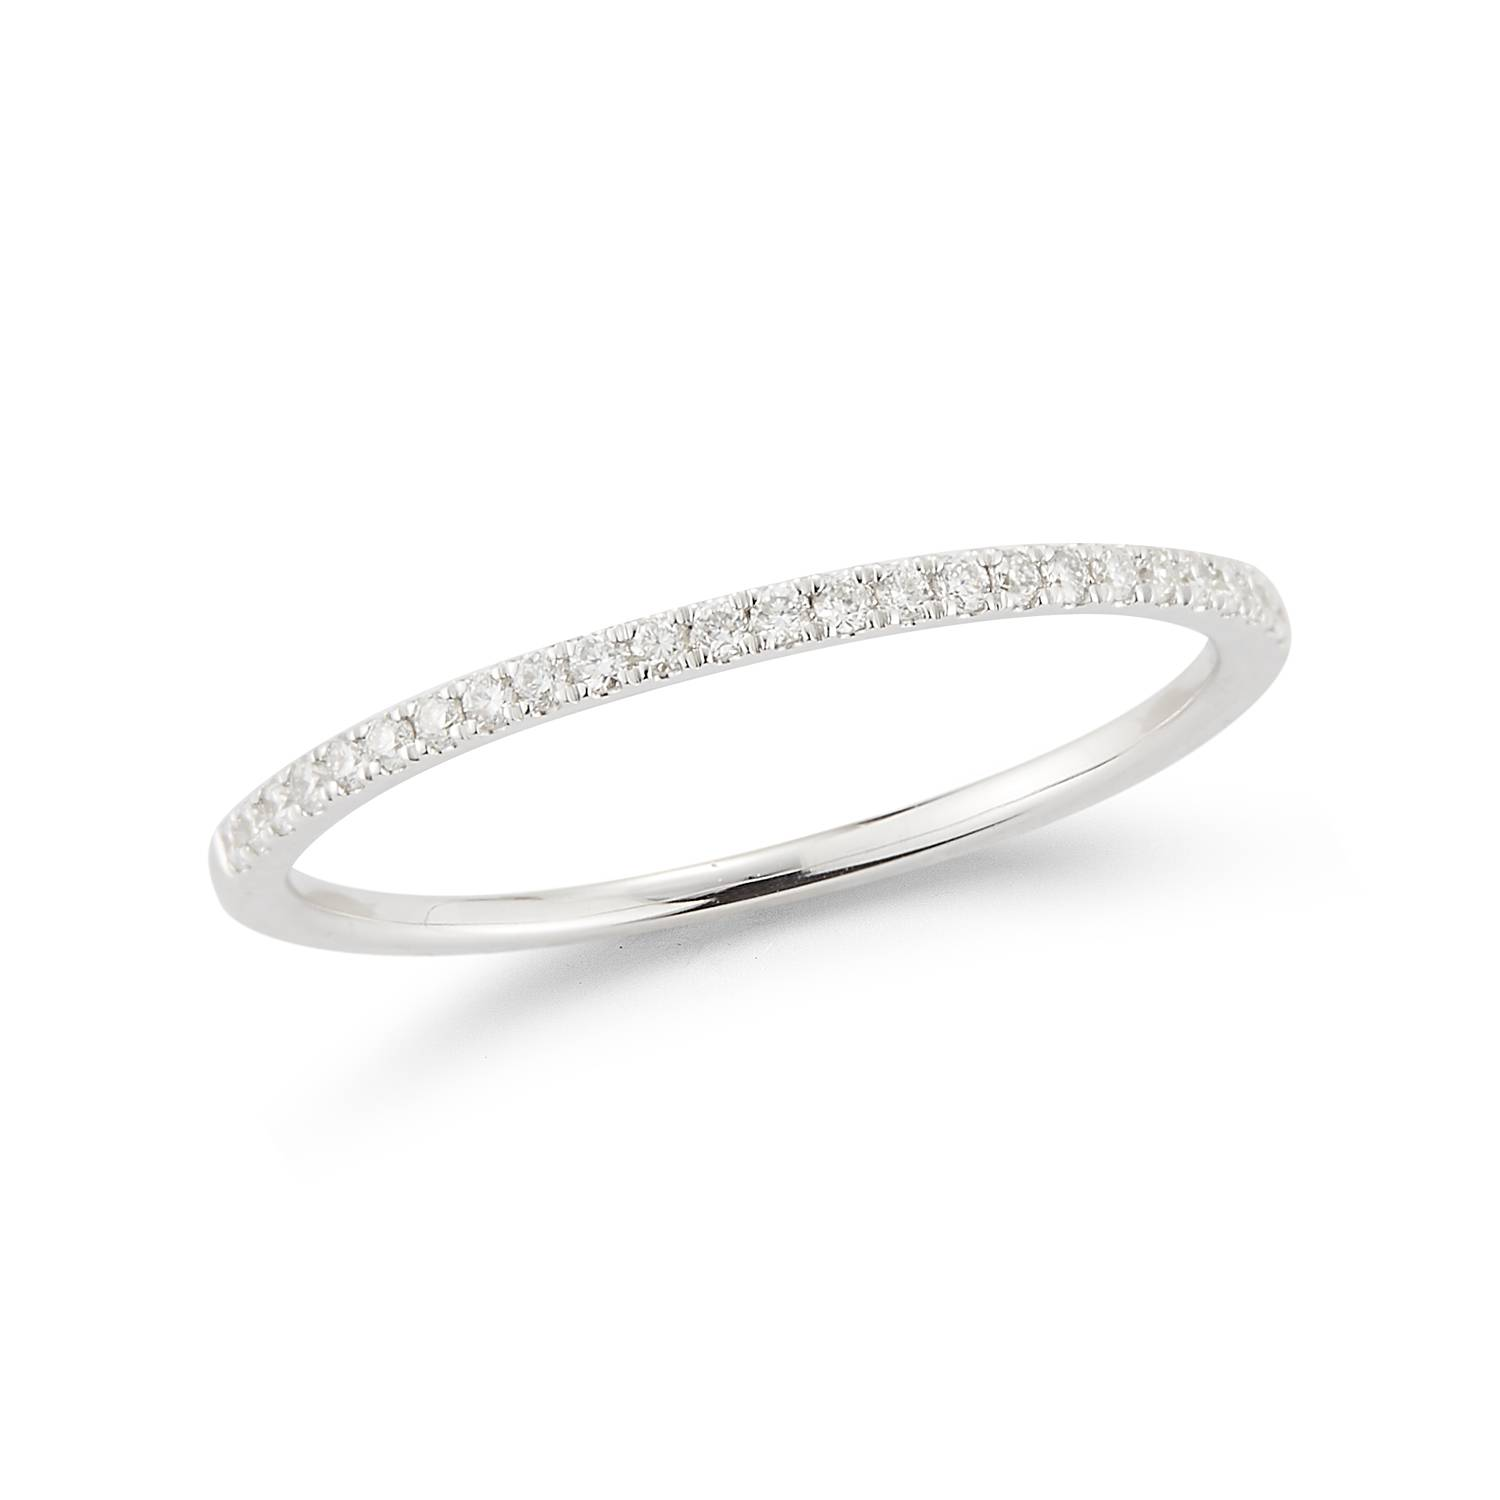 Dana Rebecca Designs Sylvie Rose Slim Ring